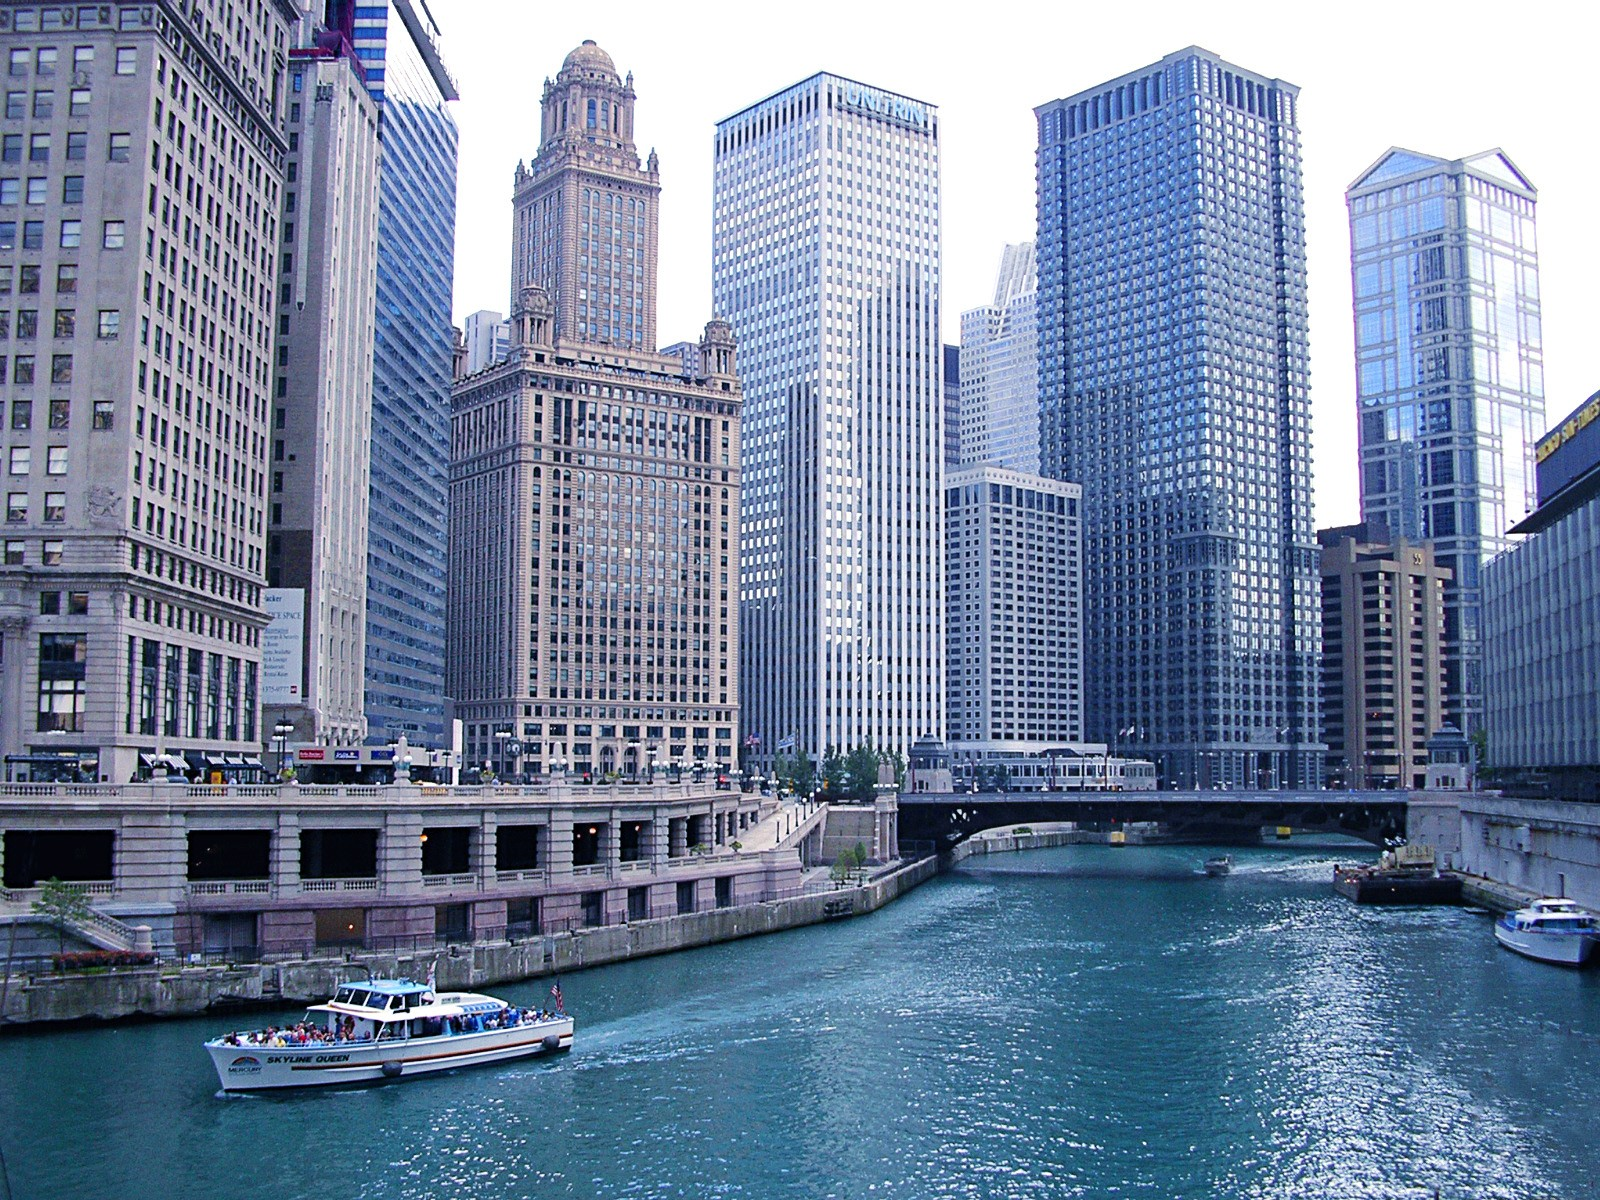 city of chicago, lake michigan